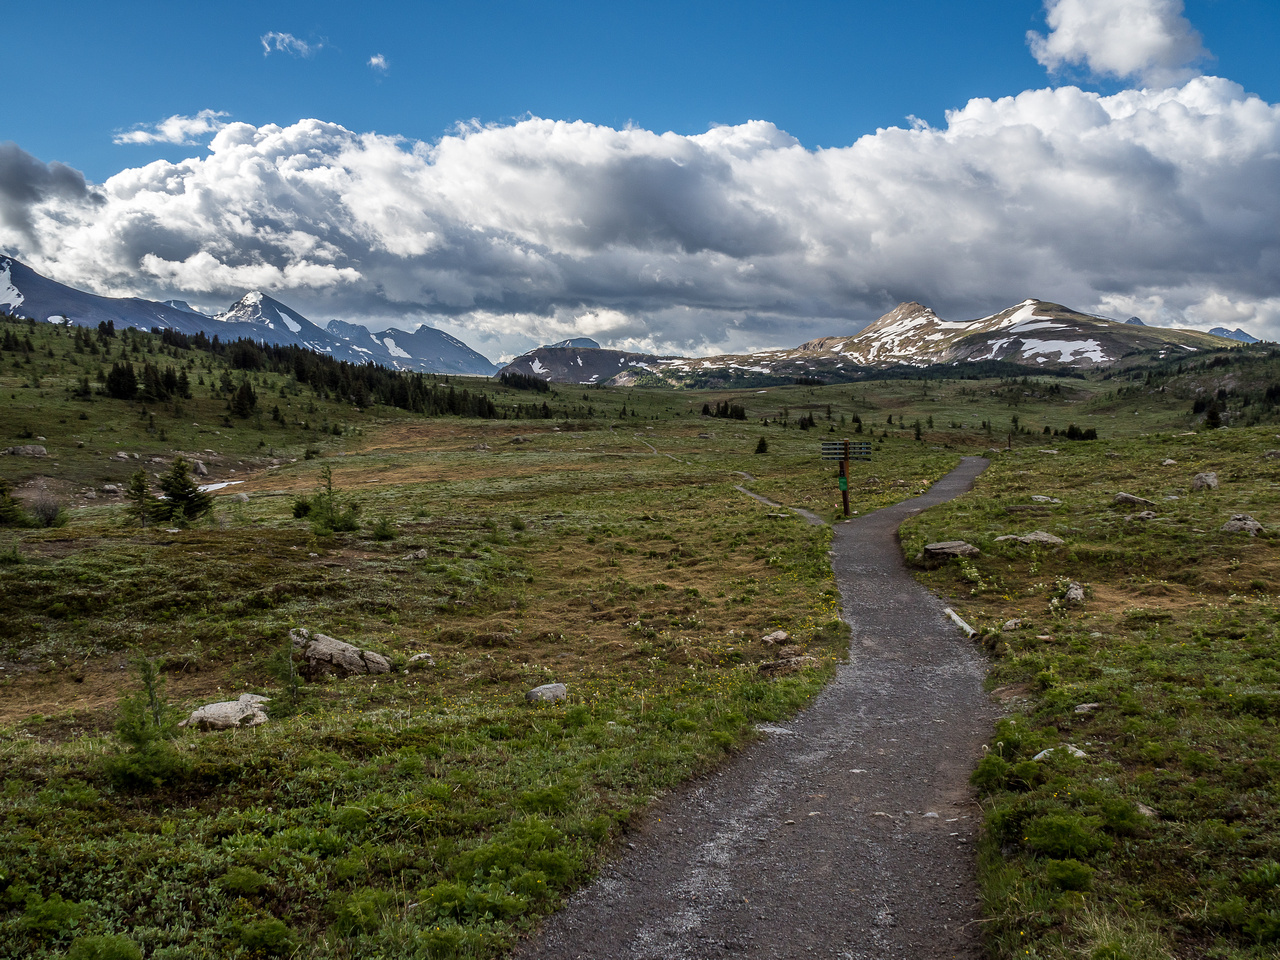 Sunshine Meadows awaits. We'll take the much smaller left hand trail towards Citadel Pass from here.